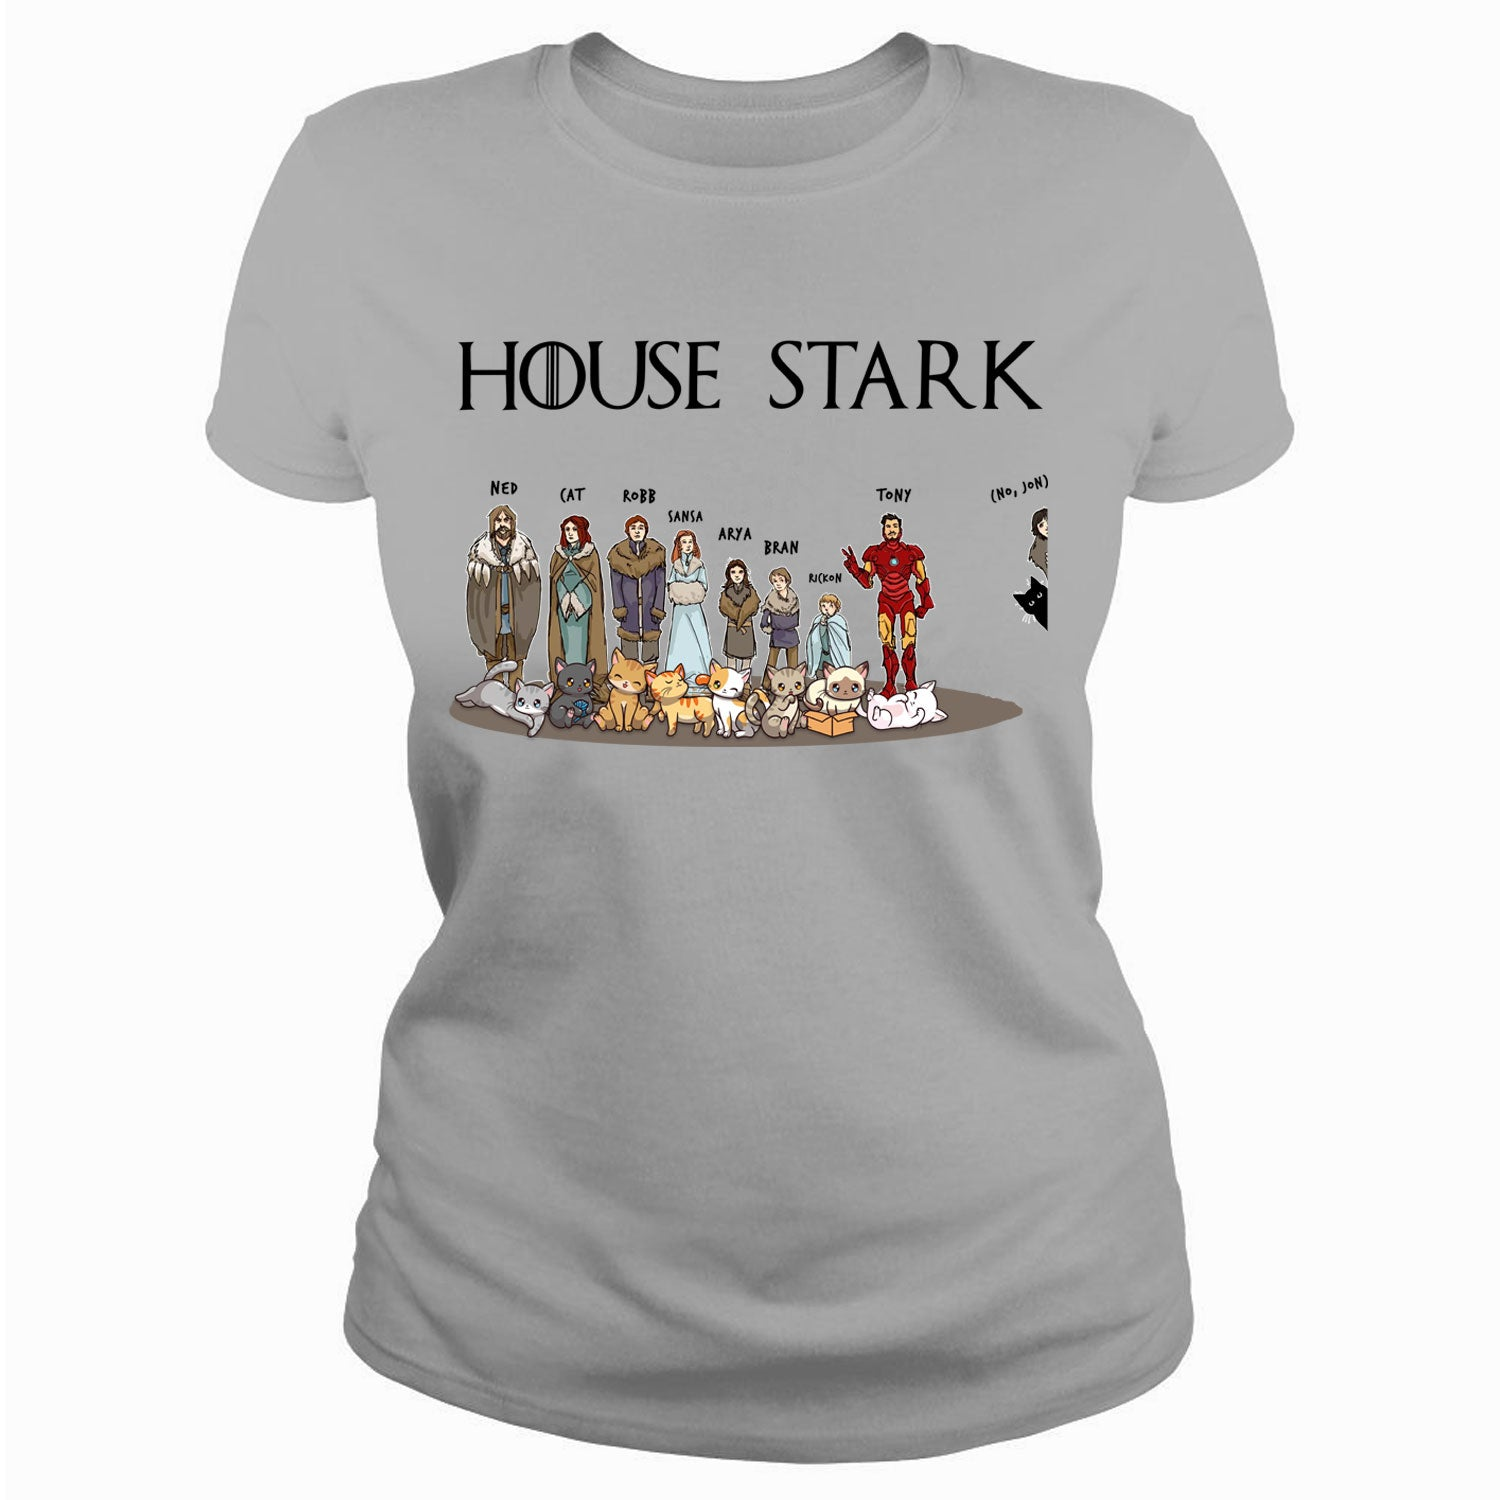 House Stark and their cats